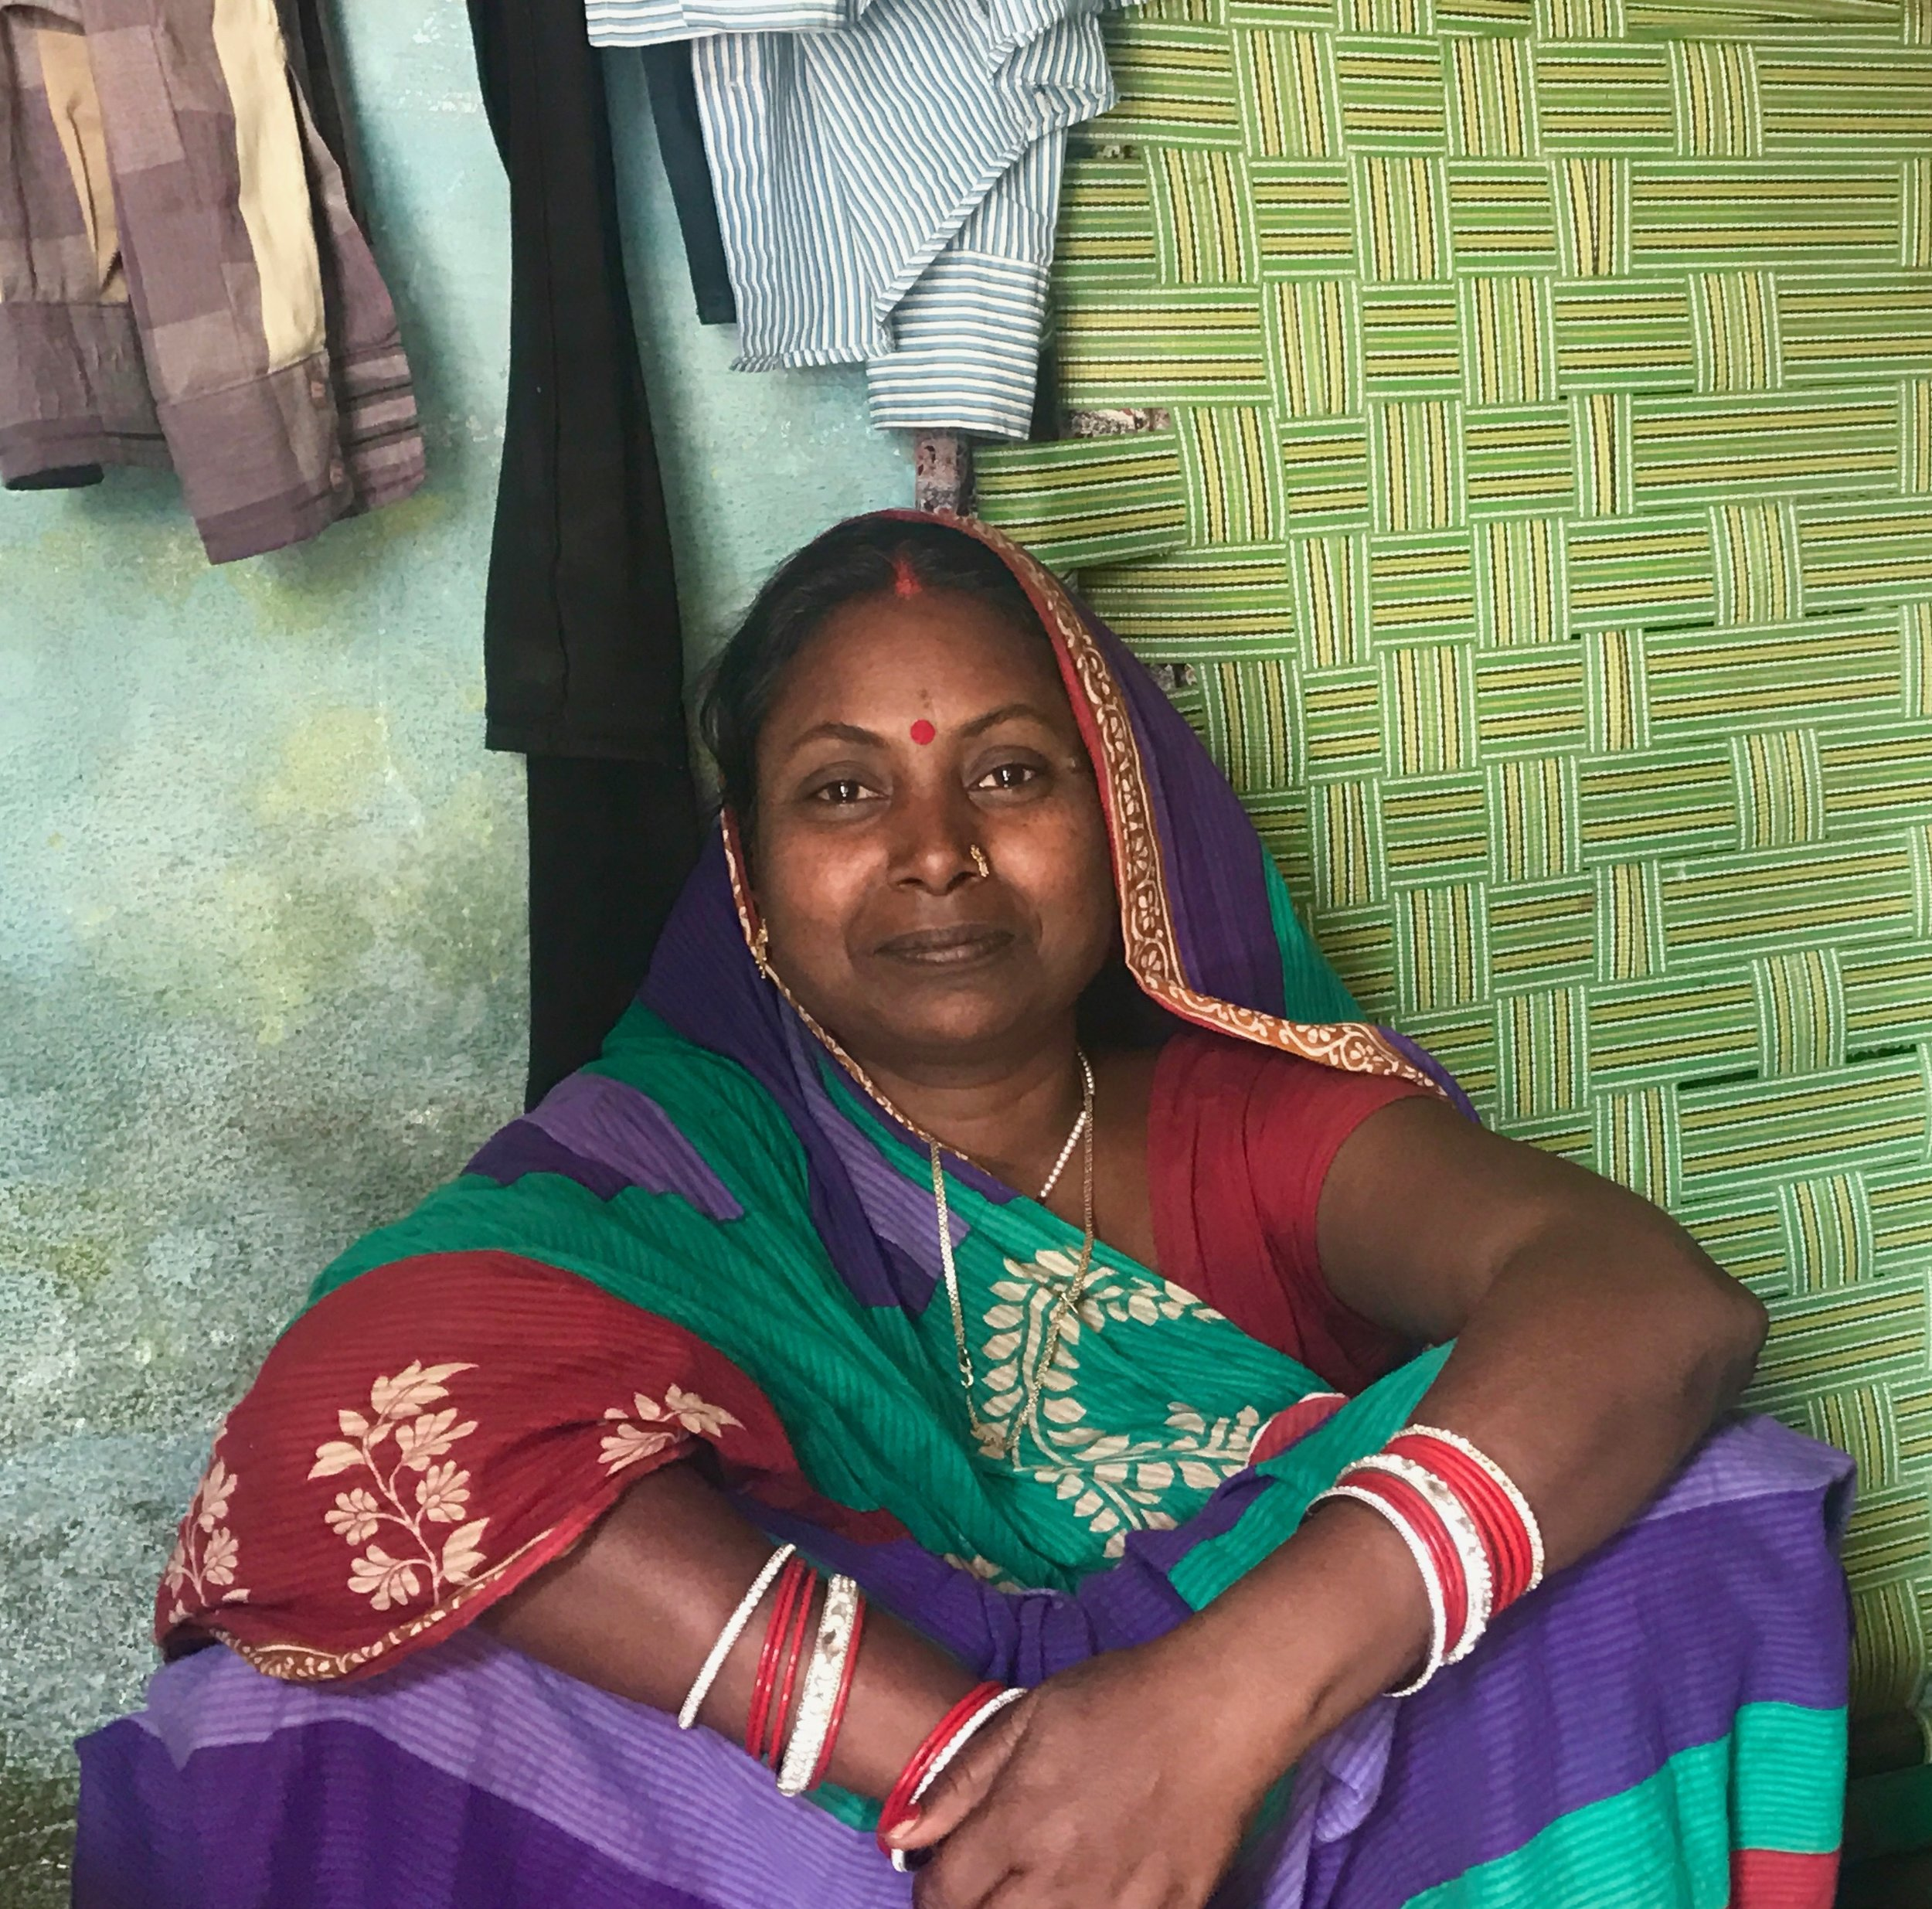 """""""We are from Ballia. We moved here 10 years ago. My husband was not well. We came to Varanasi for his medication, and spent what little money we brought with us from our village. So for 3 years, I worked as a maid in different houses so my husband could receive his treatment. For 3 years, I was the woman of the home. I financed everything and slowly his health improved. Both of us started working, and when we were able to save some money, we sent our children to school. When he was not well, I never lost hope. I prayed that I would work to feed my husband and children. I would never mistreat my husband nor let him feel dejected. I would tell him not to cry. He used to cry a lot, and still I did not lose hope. I had a lot of power. I was never unhappy. I always told him not to worry. I told him that I would always be with him."""""""